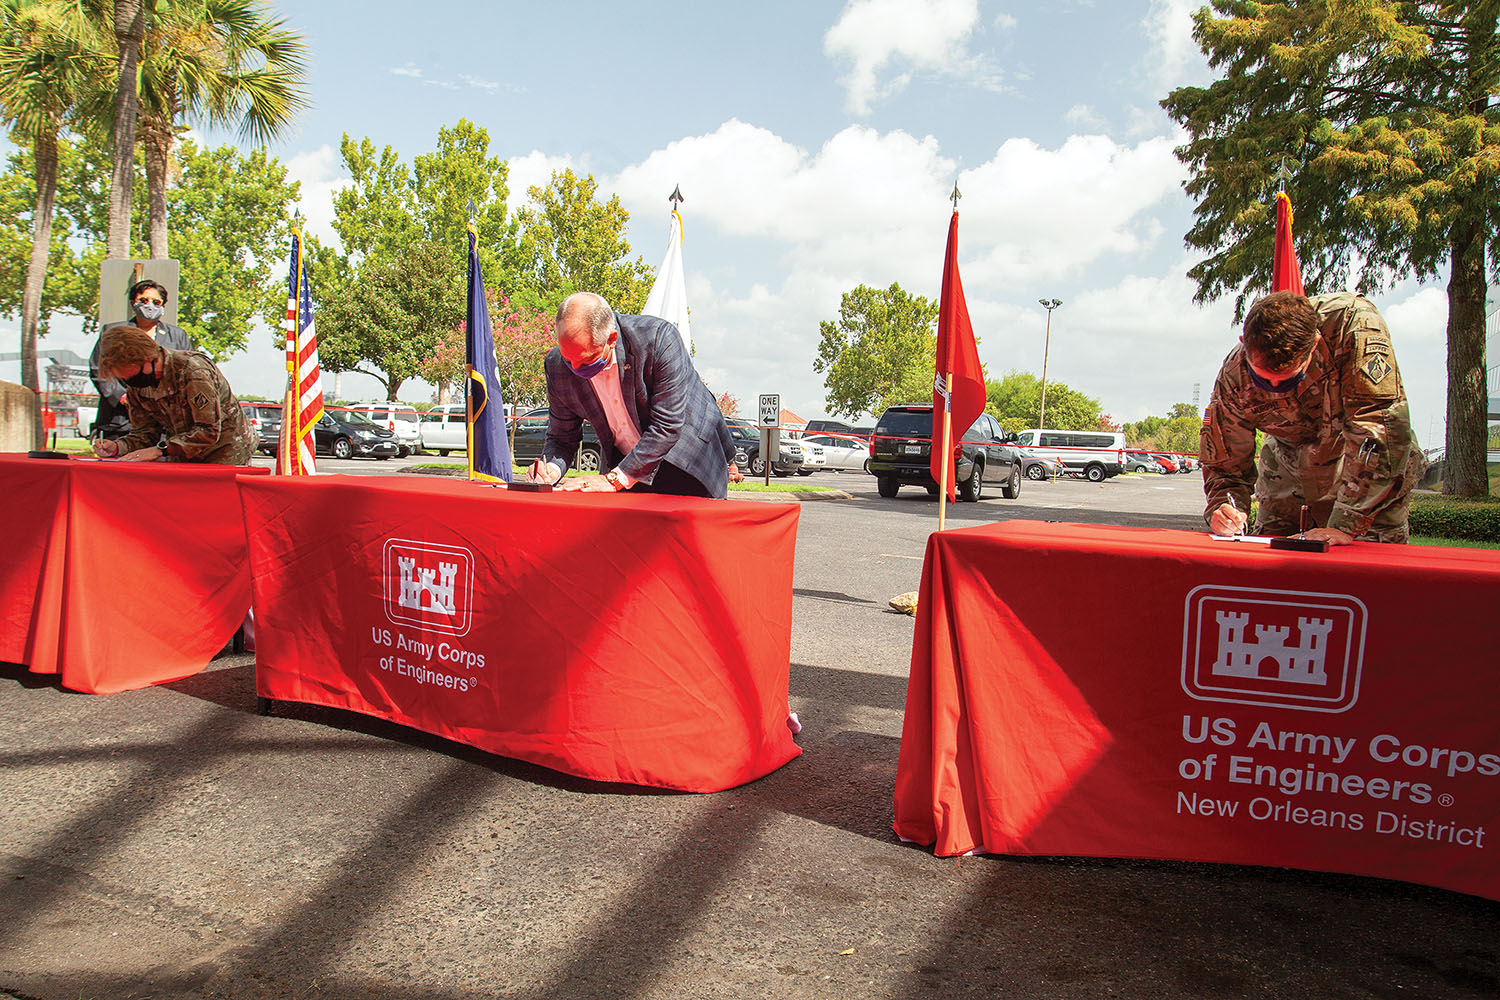 From left, Mississippi Valley Division Engineer Maj. Gen. Dianna Holland, Louisiana Gov. John Bel Edwards, and New Orleans District Engineer Col Stephen Murphy sign project partnership agreement July 31. (Photo by Frank McCormack)